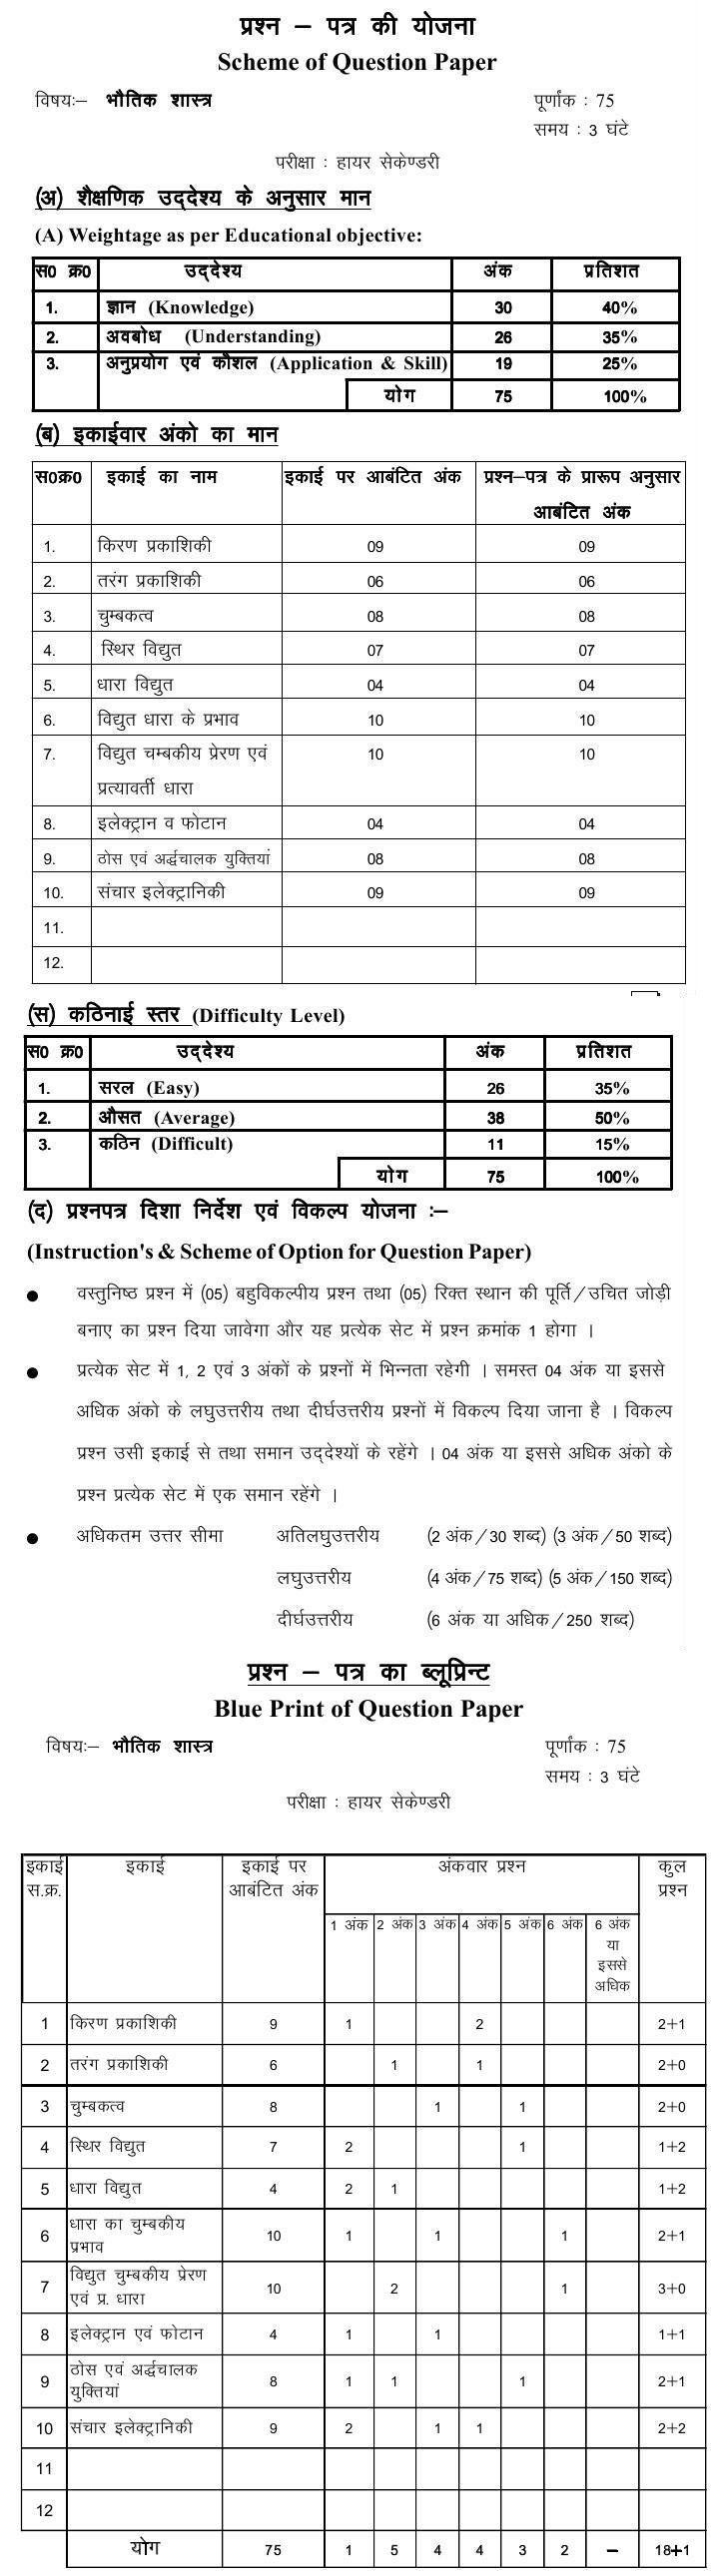 Chattisgarh Board Class 12 Scheme and Blue Print of Physics